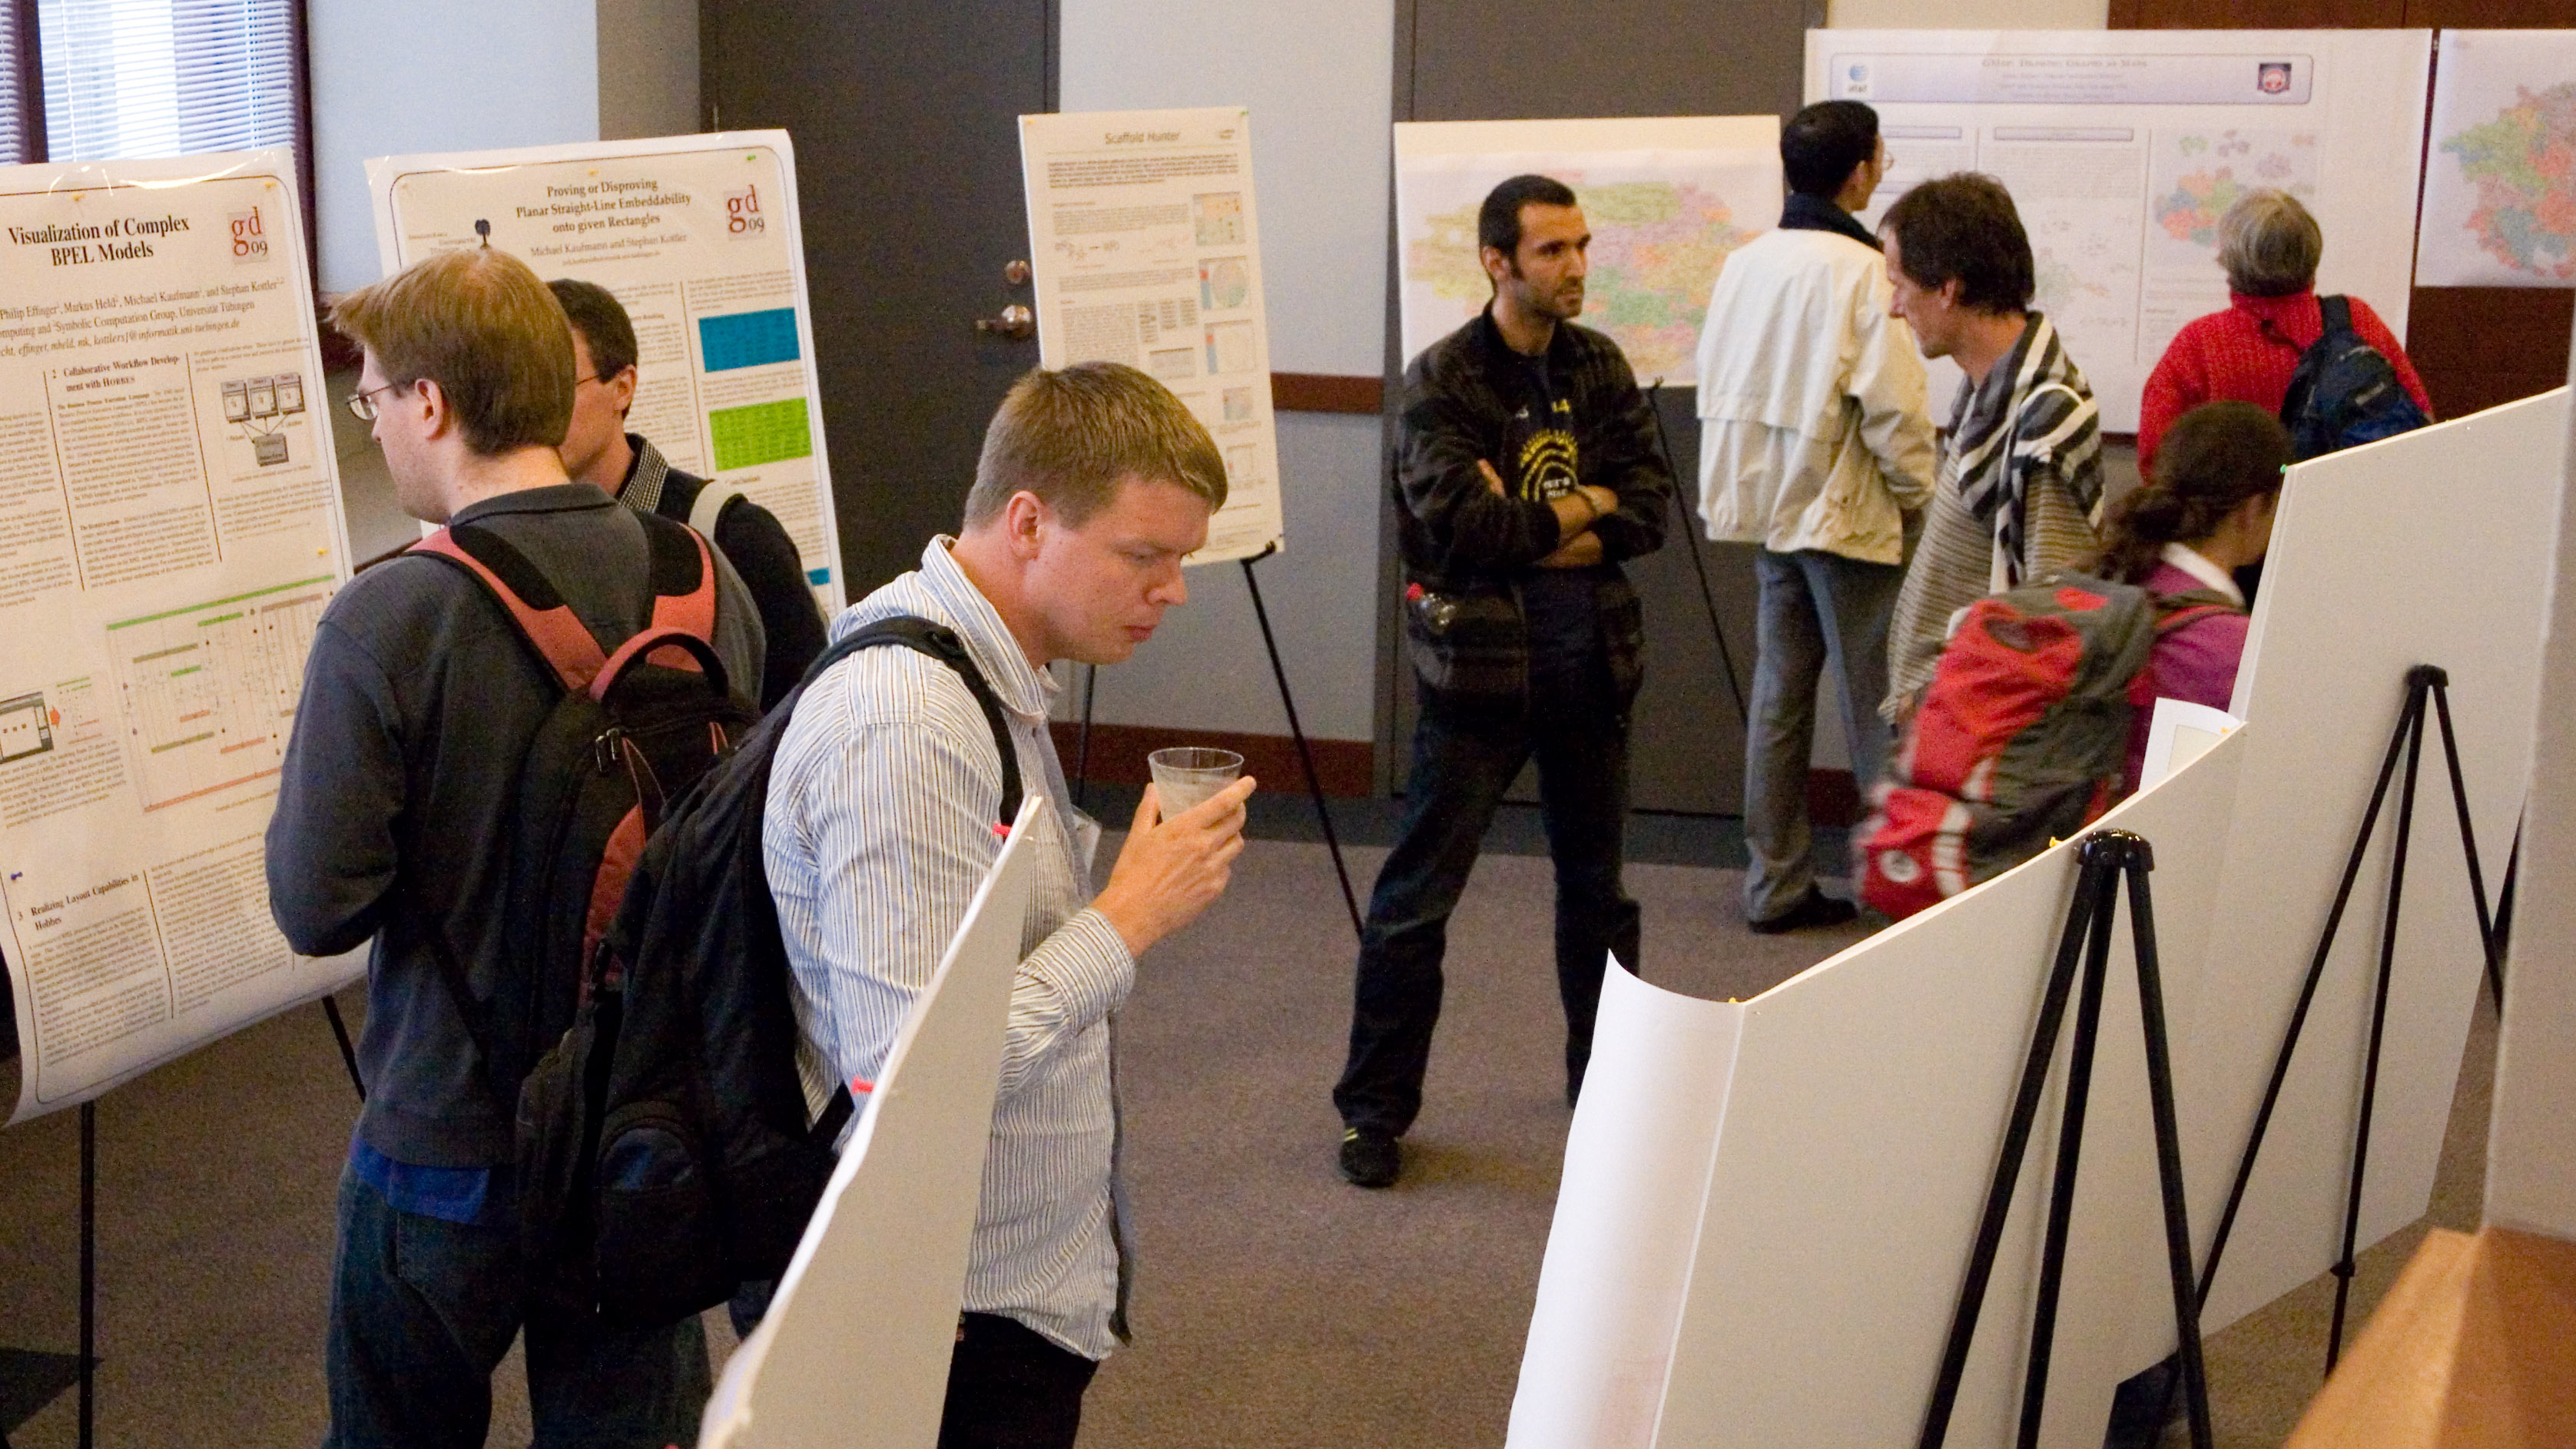 https://commons.wikimedia.org/wiki/File:GD09_Poster_Session.jpg